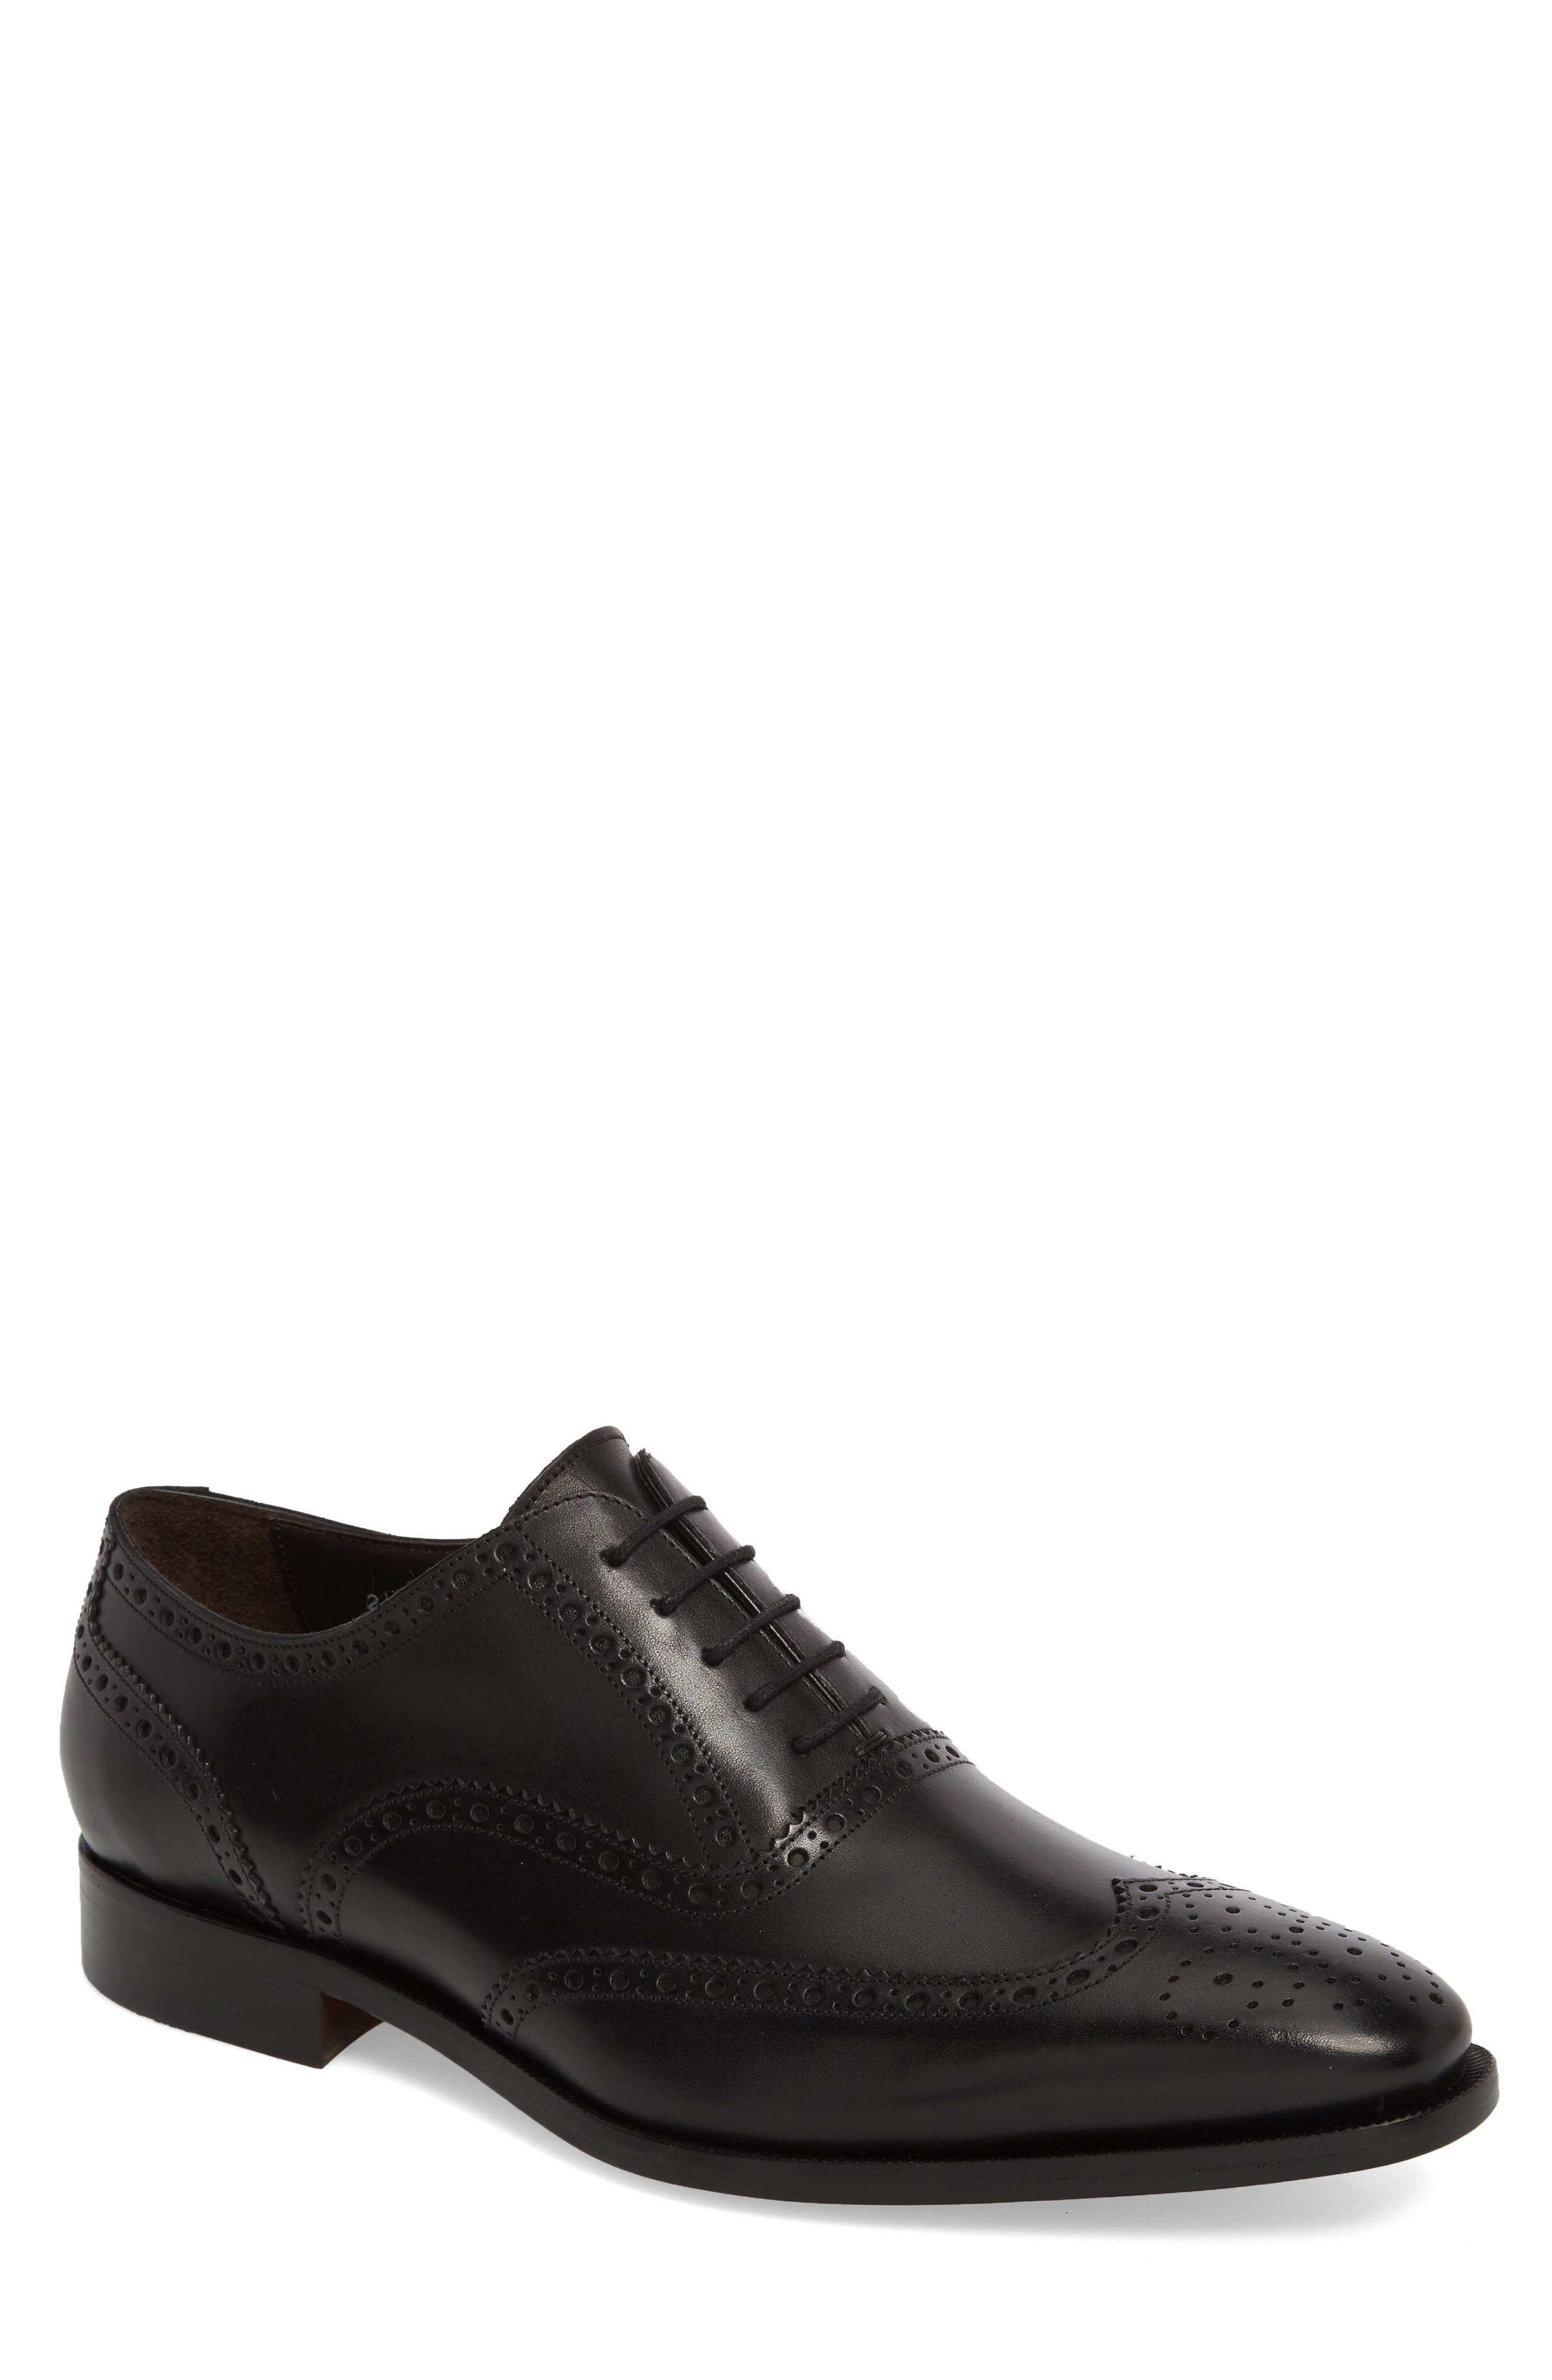 To Boot New York Ambler Wingtip, Black